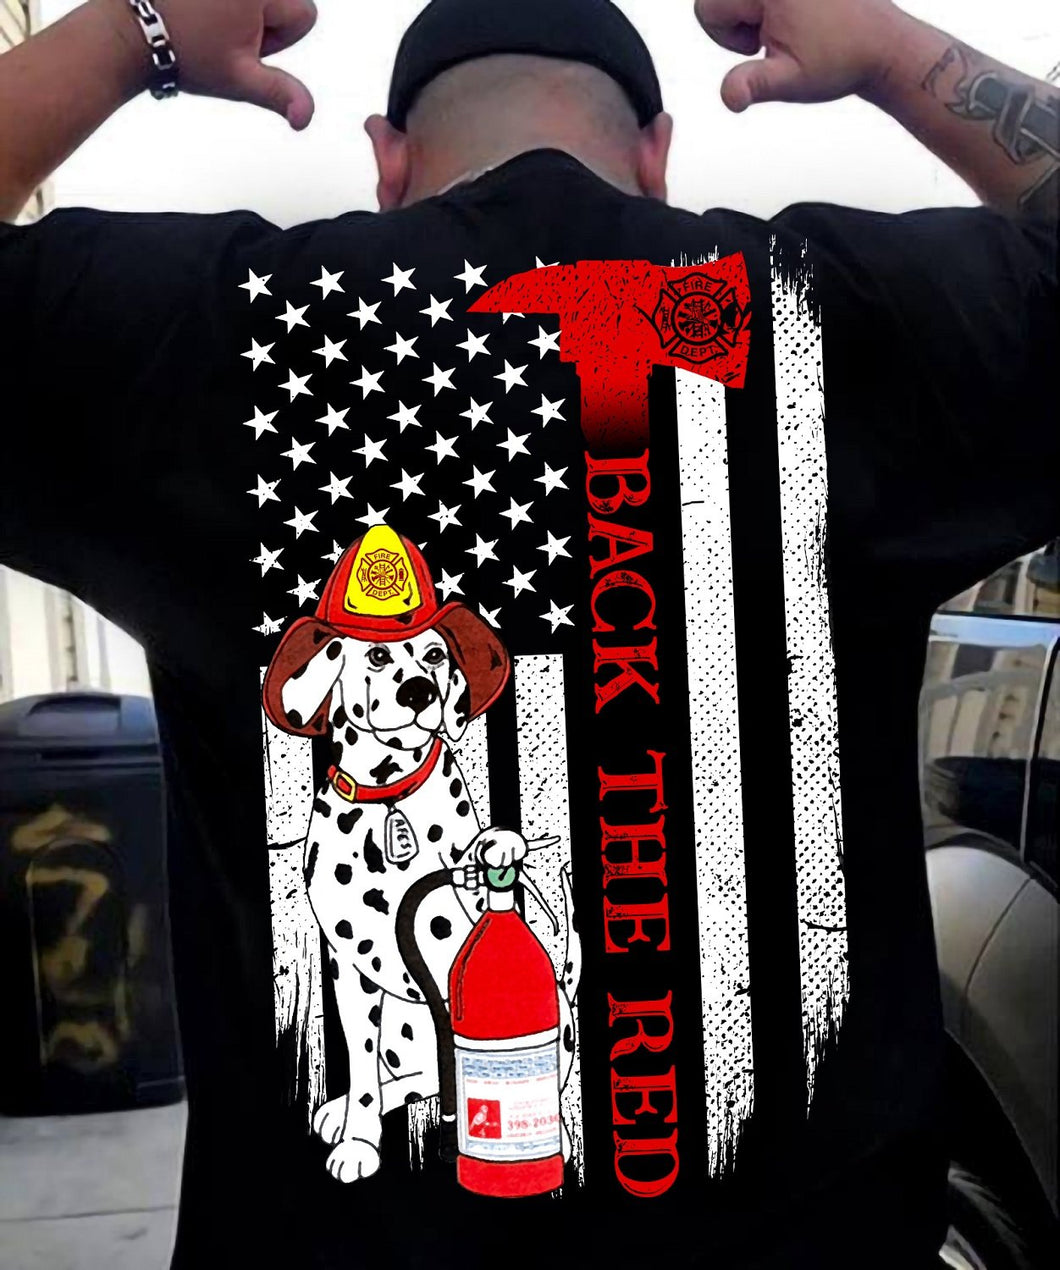 BACK THE RED - Firefighter T-shirt